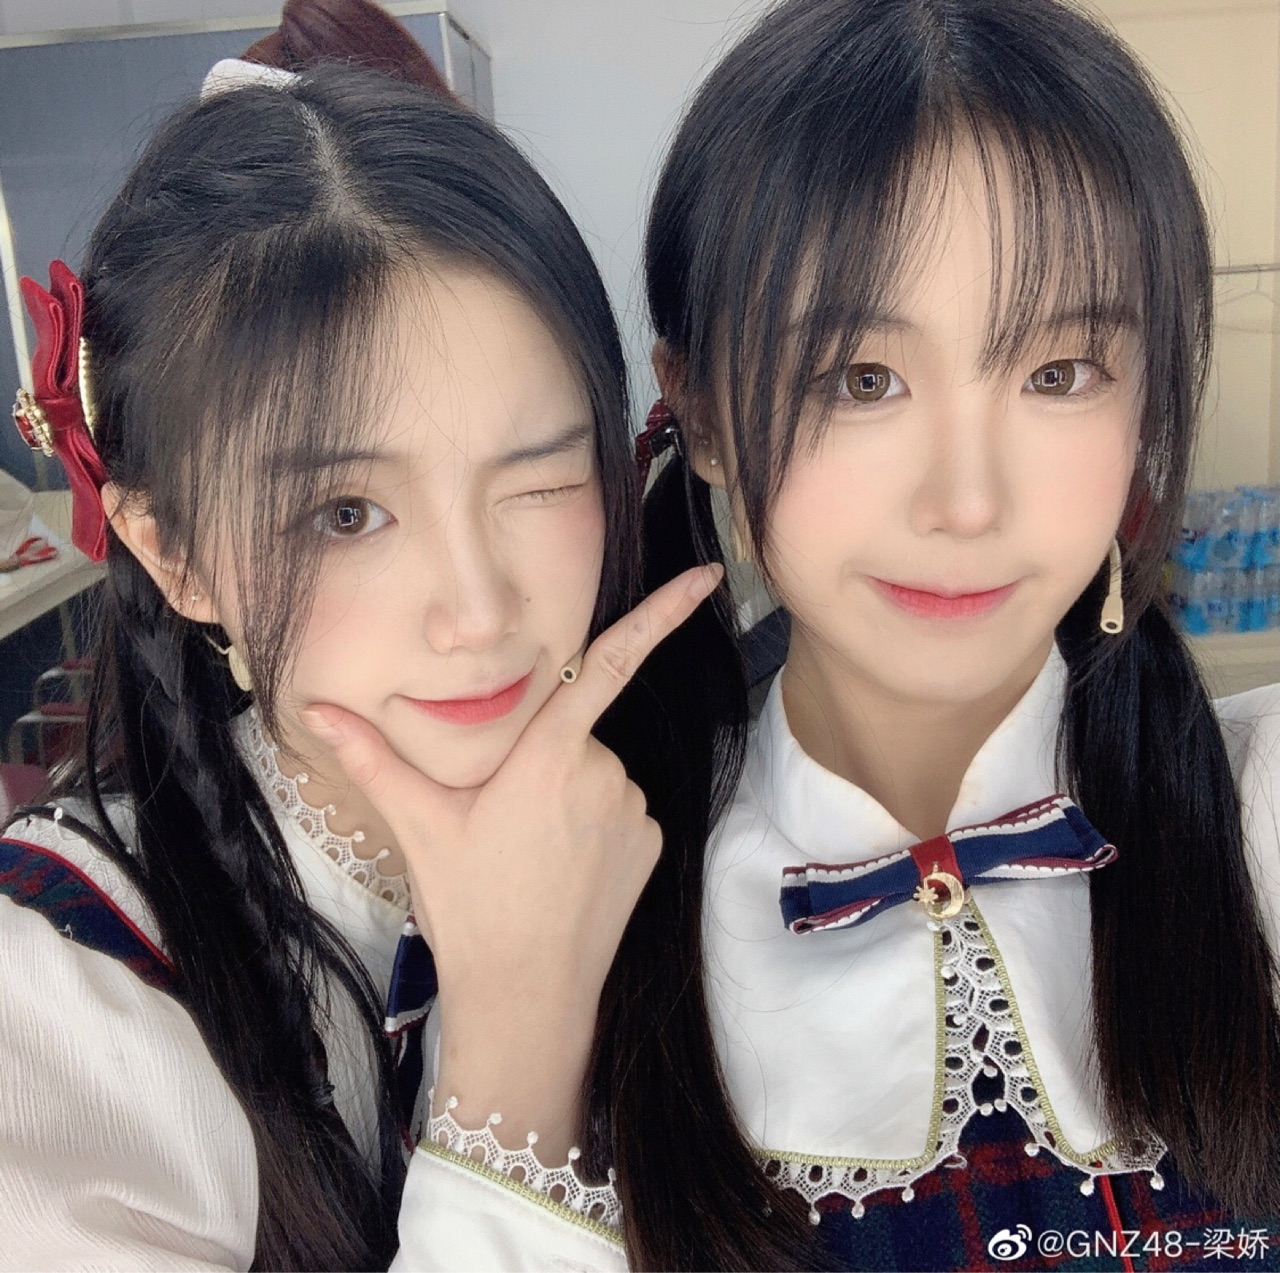 snh48, gp999, and gnz48 image